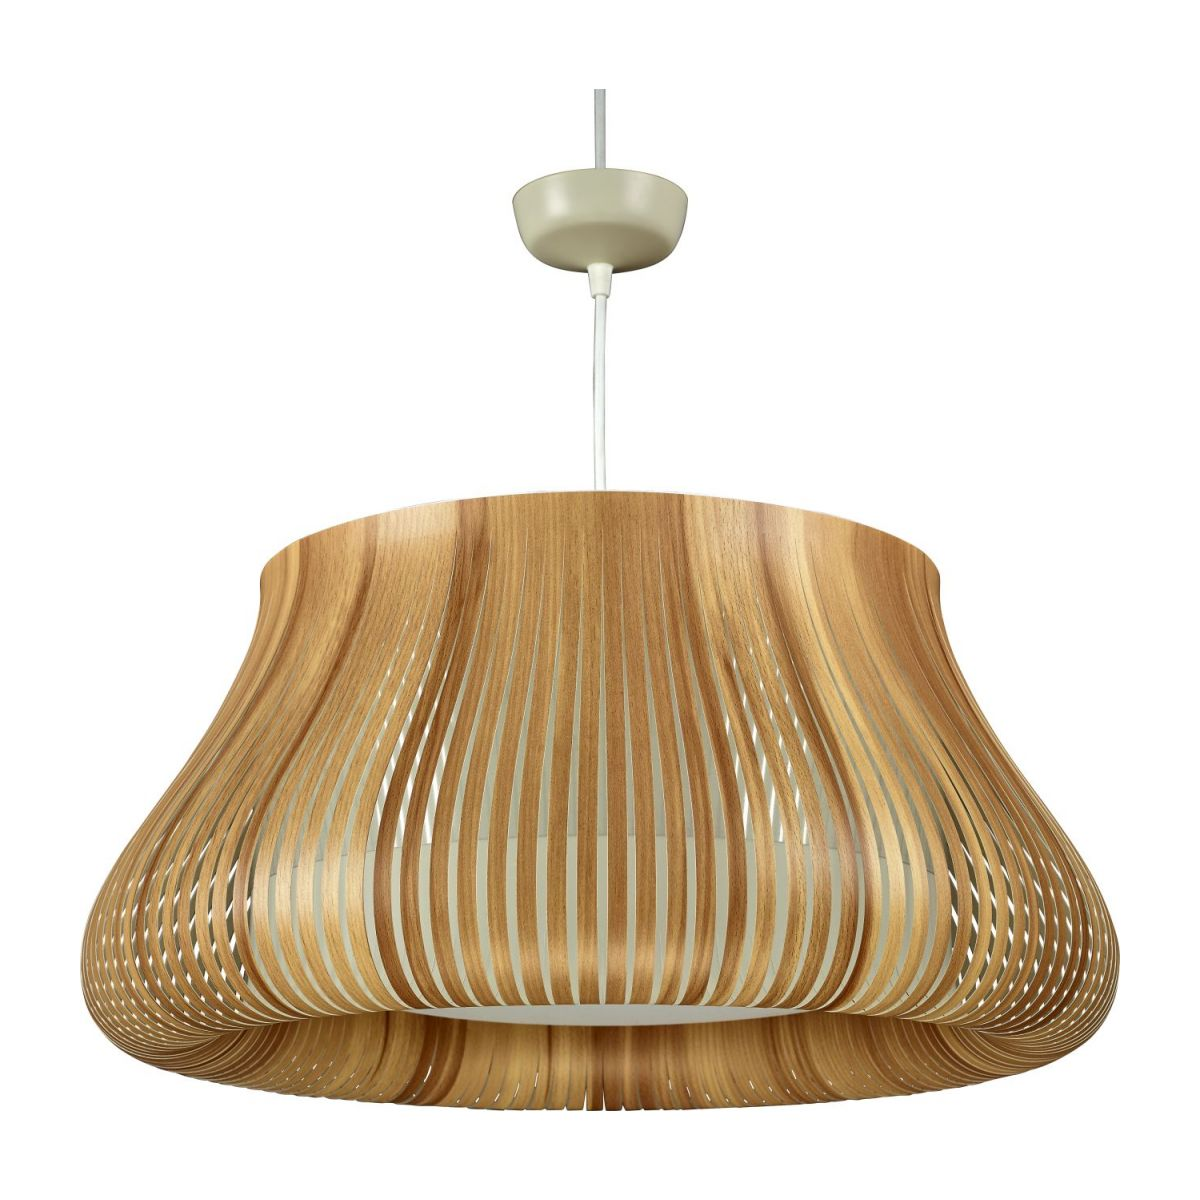 Ceiling lamp in PVC, natural wood n°1